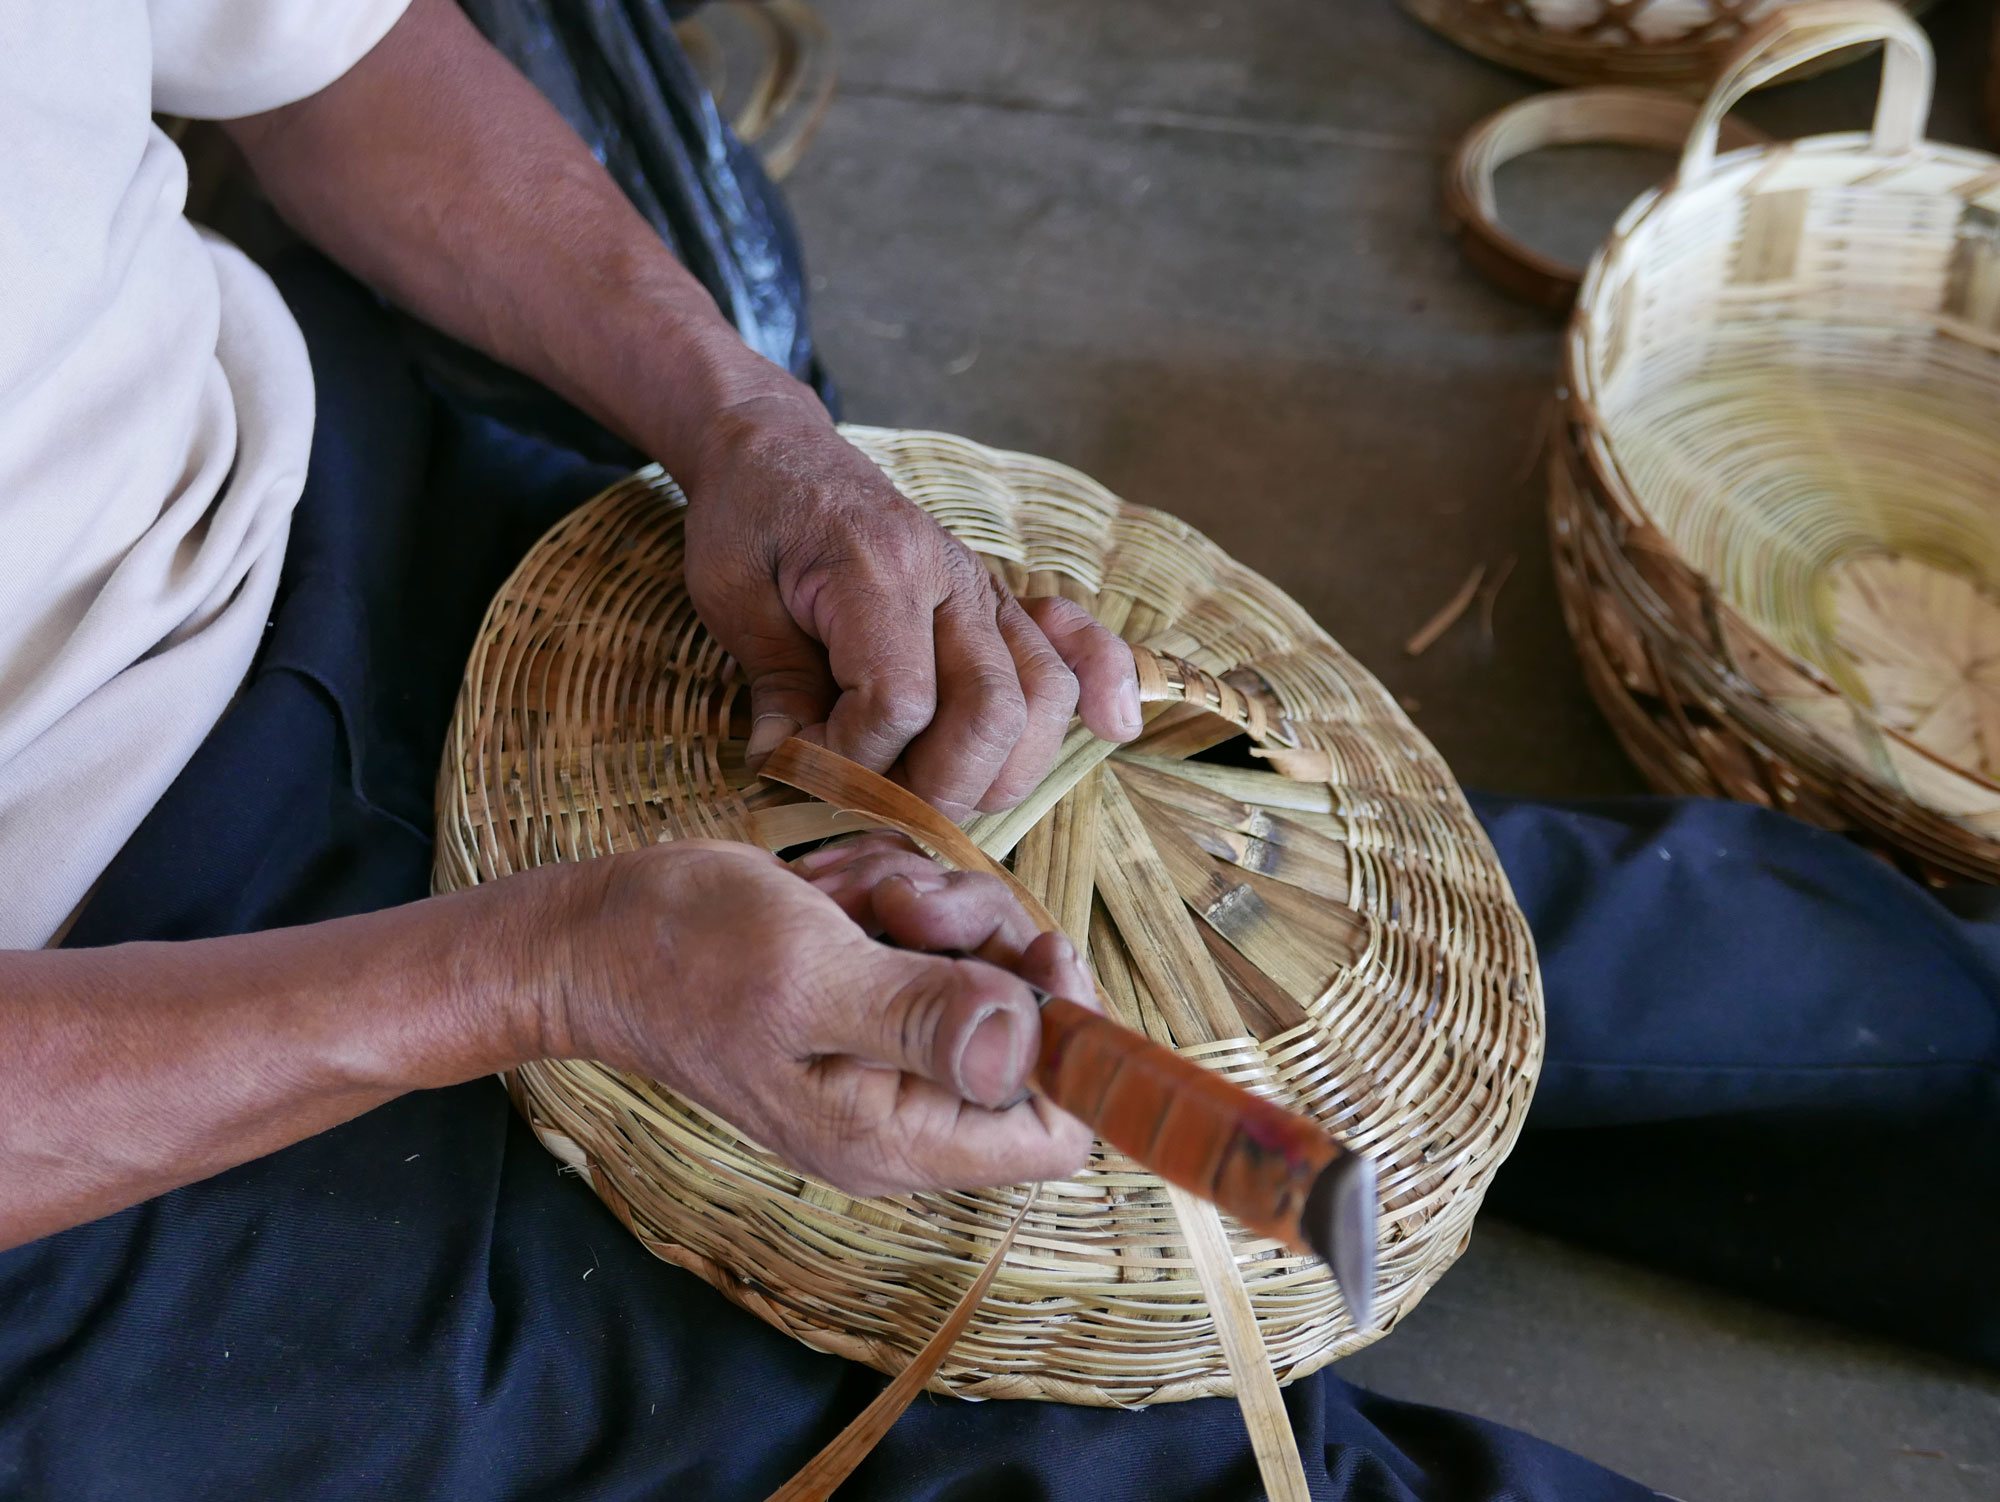 How to Weave a Basket in Oaxaca Mexico - www.nidocollective.com/carrizoweaving #carrizo #canastascarrizo #basketweaving